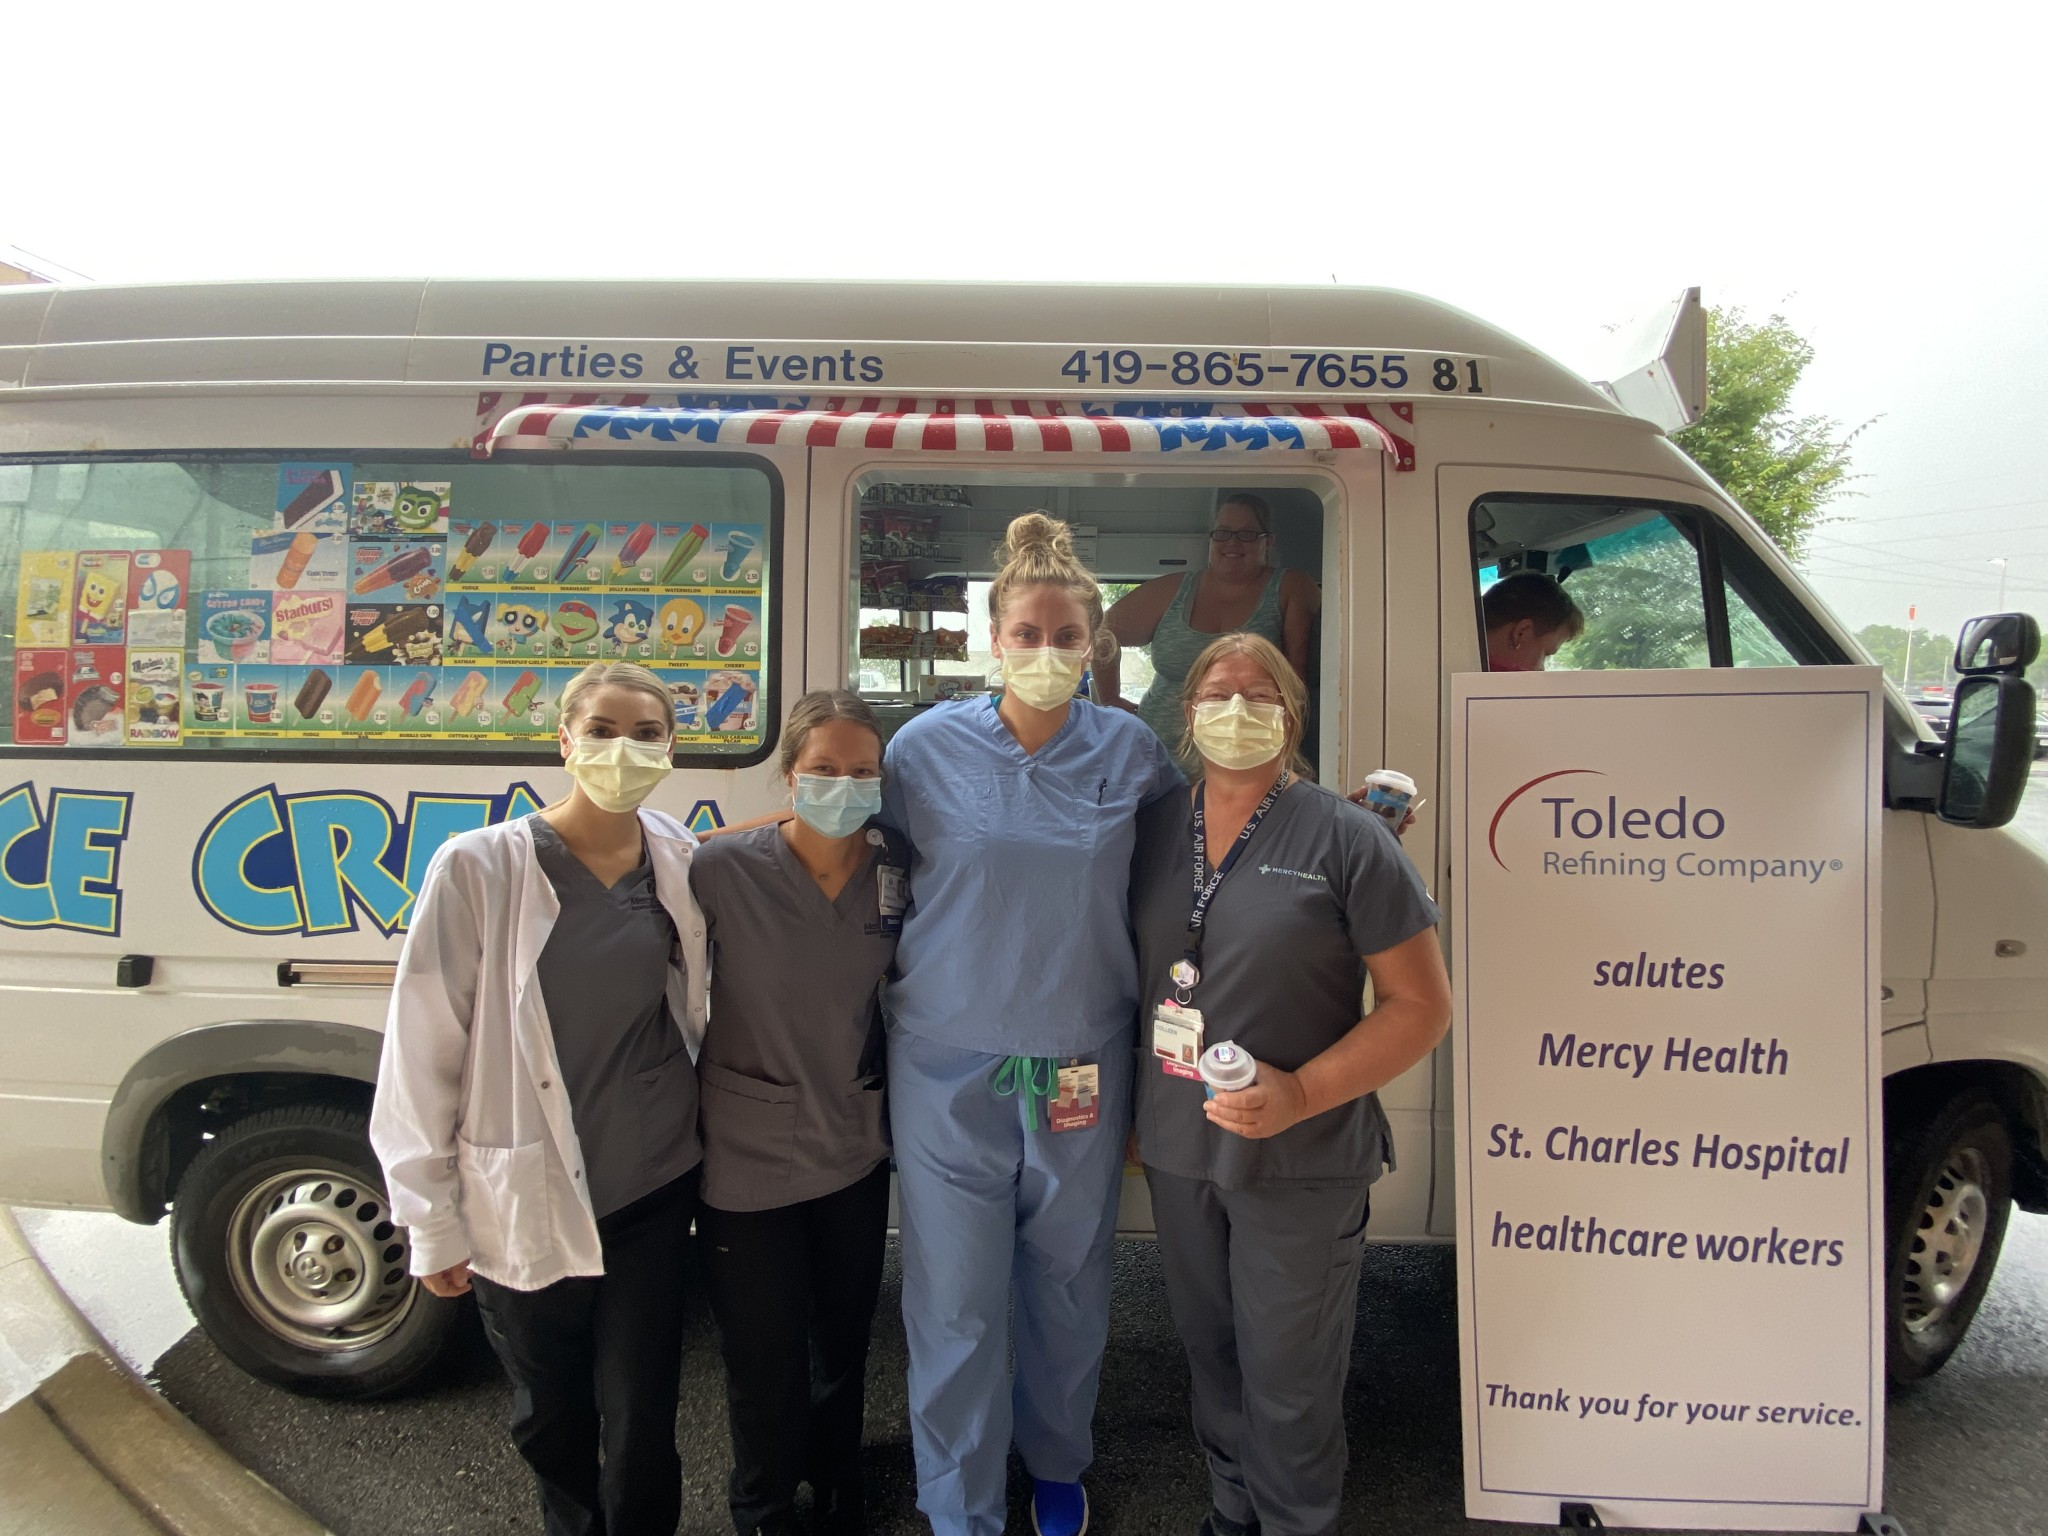 Toledo Refining Company honored Mercy Health – St. Charles Hospital health care workers with icy delights July 23. Toledo Refining also delivered another surprise treat – a $5,000 donation to the hospital's nurses' continuing education fund. (Submitted photo)